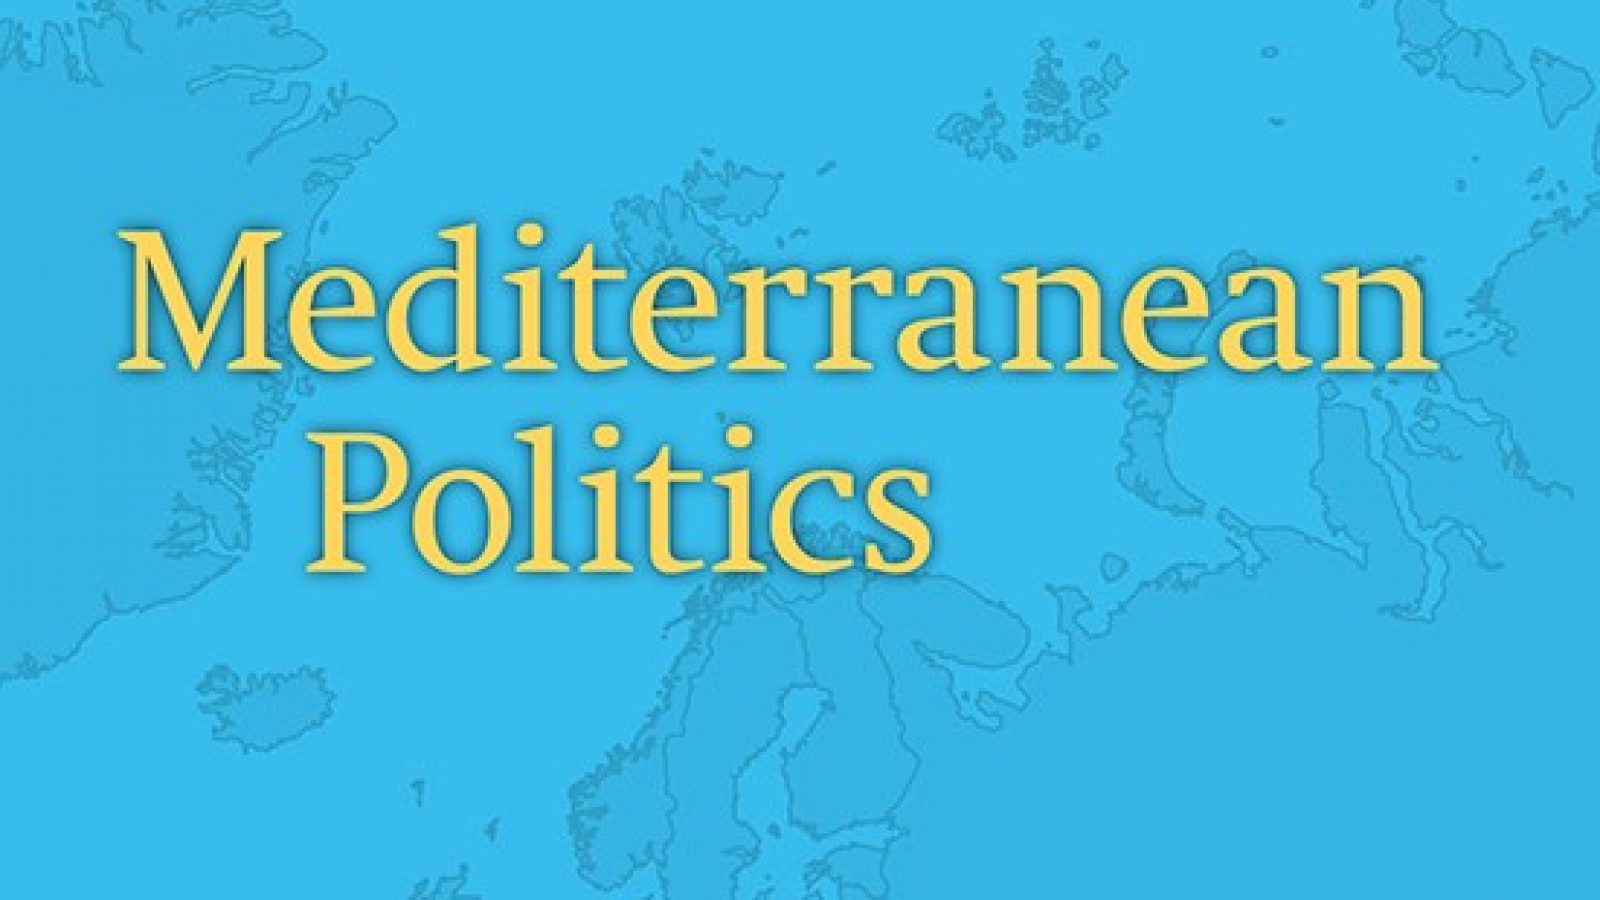 The cover of the journal Mediterranean Politics